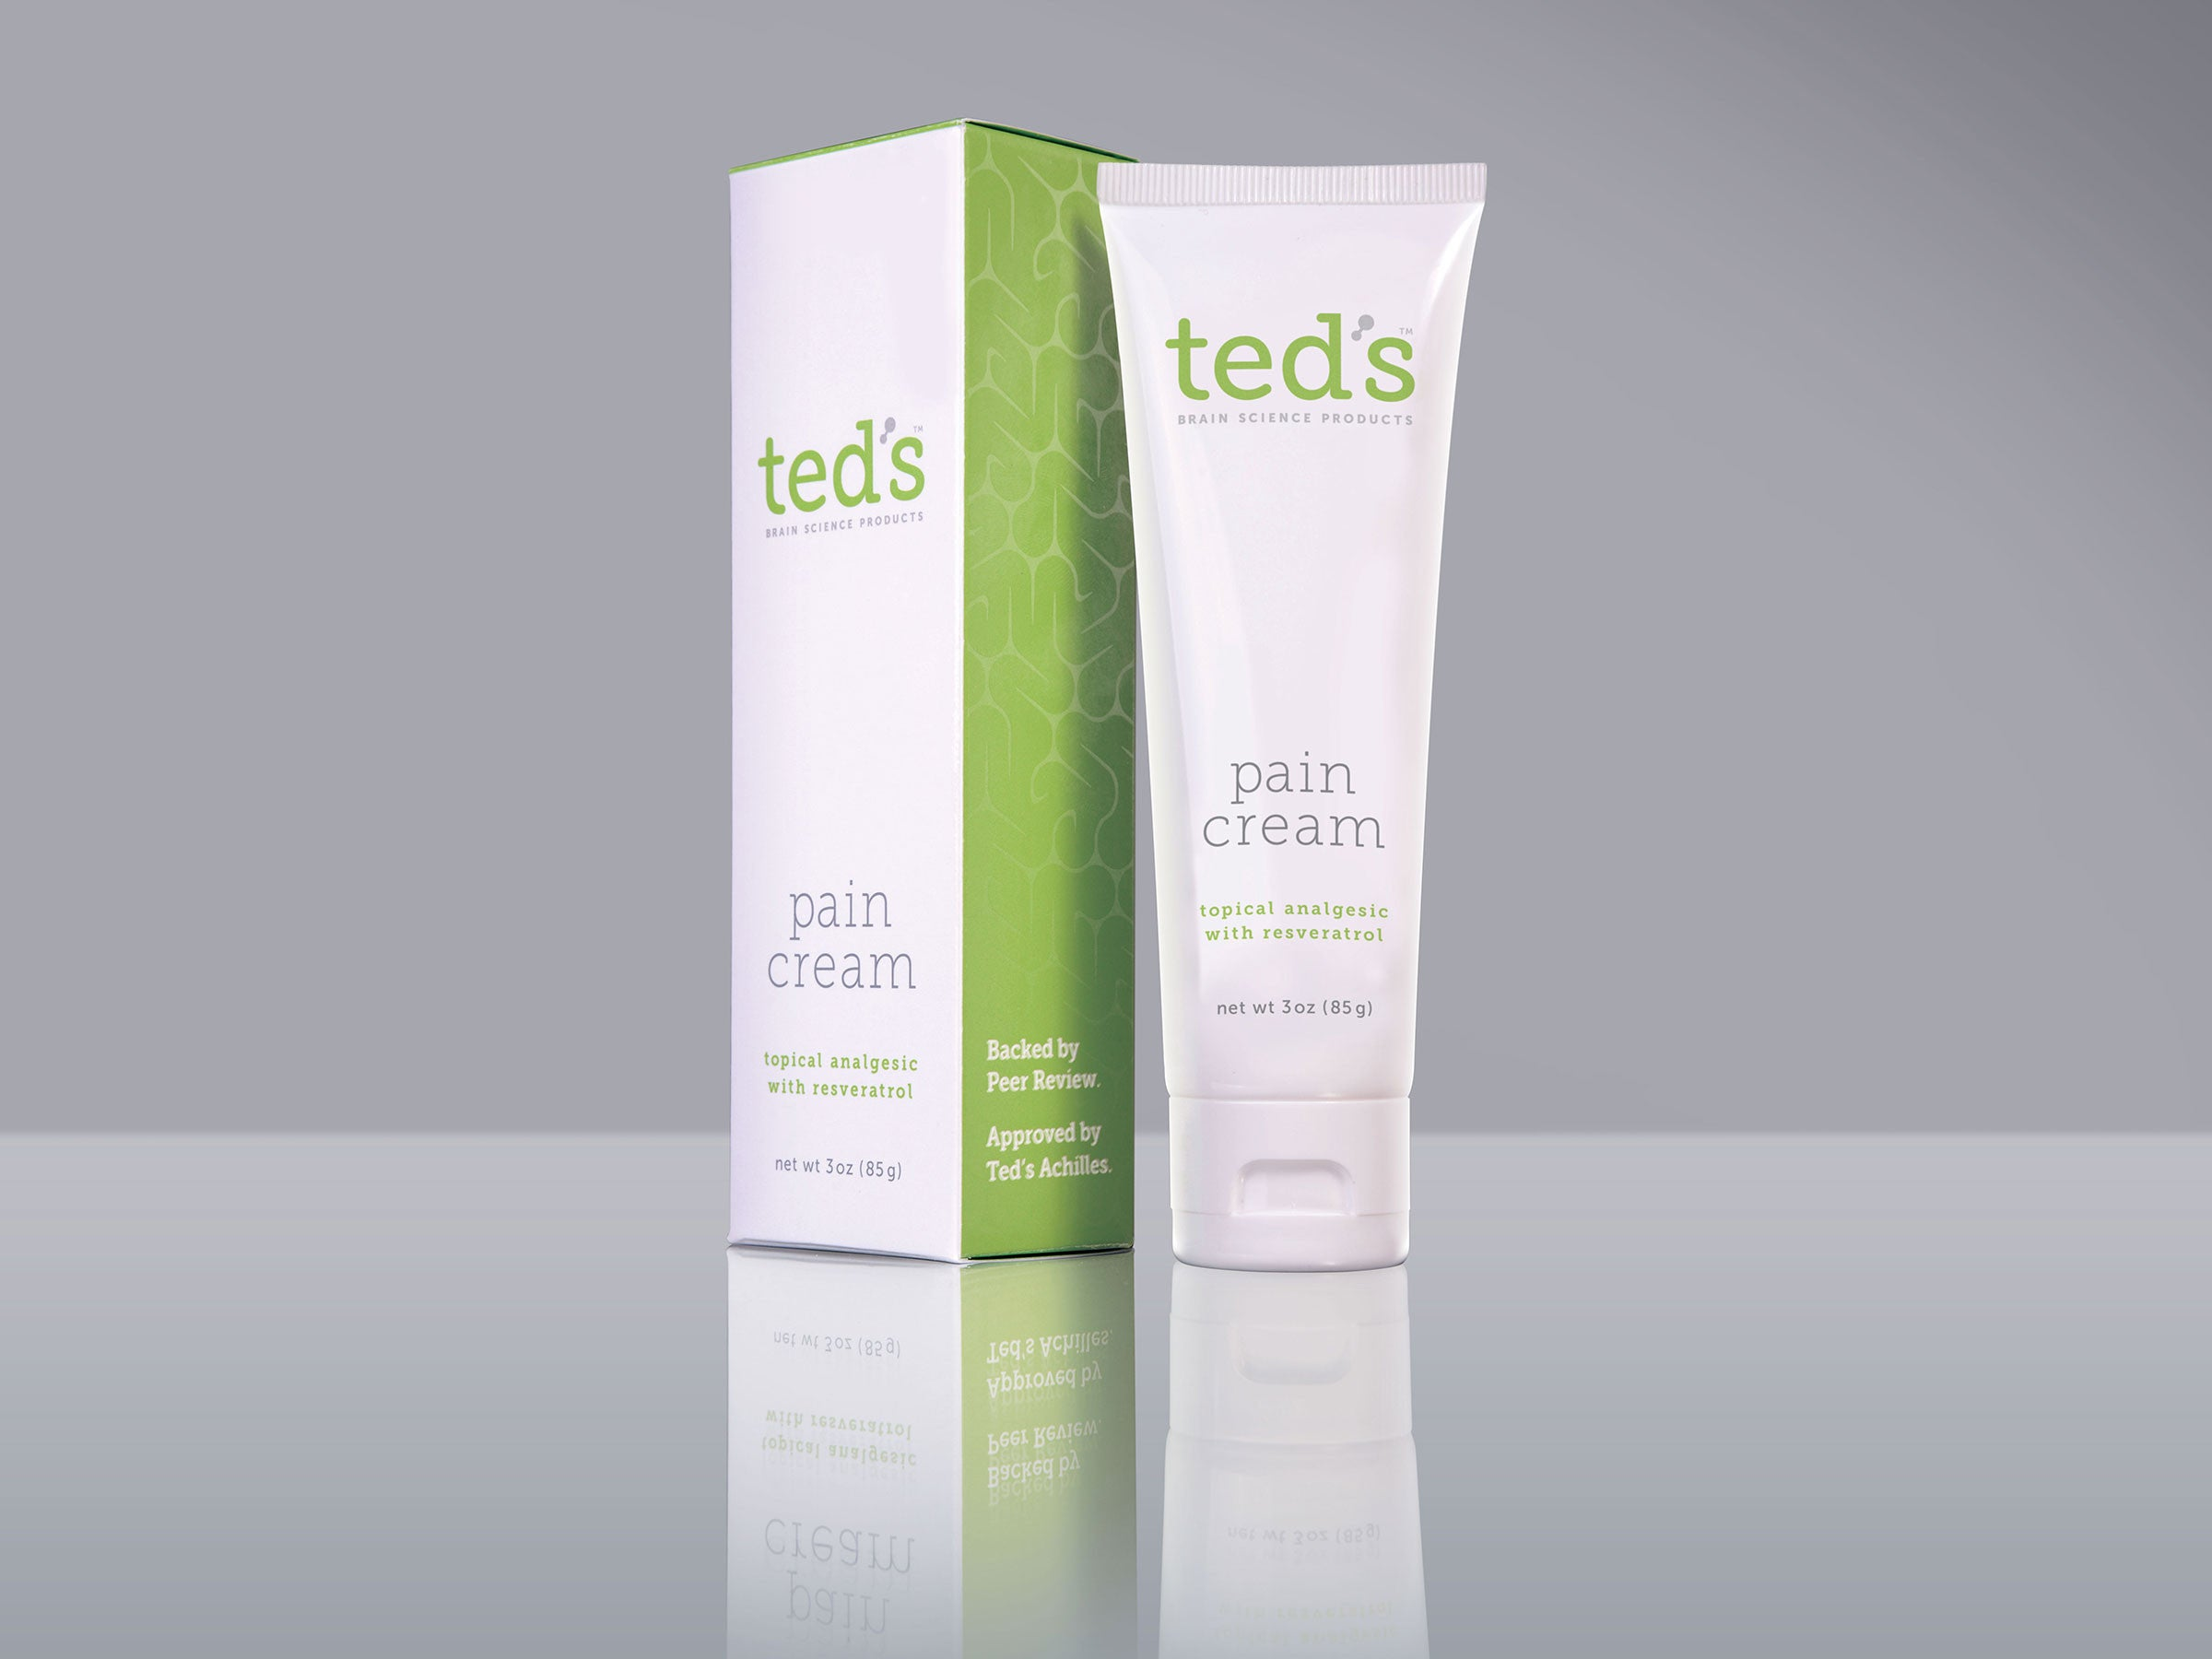 Ted's Pain Cream, one 3oz/85g tube